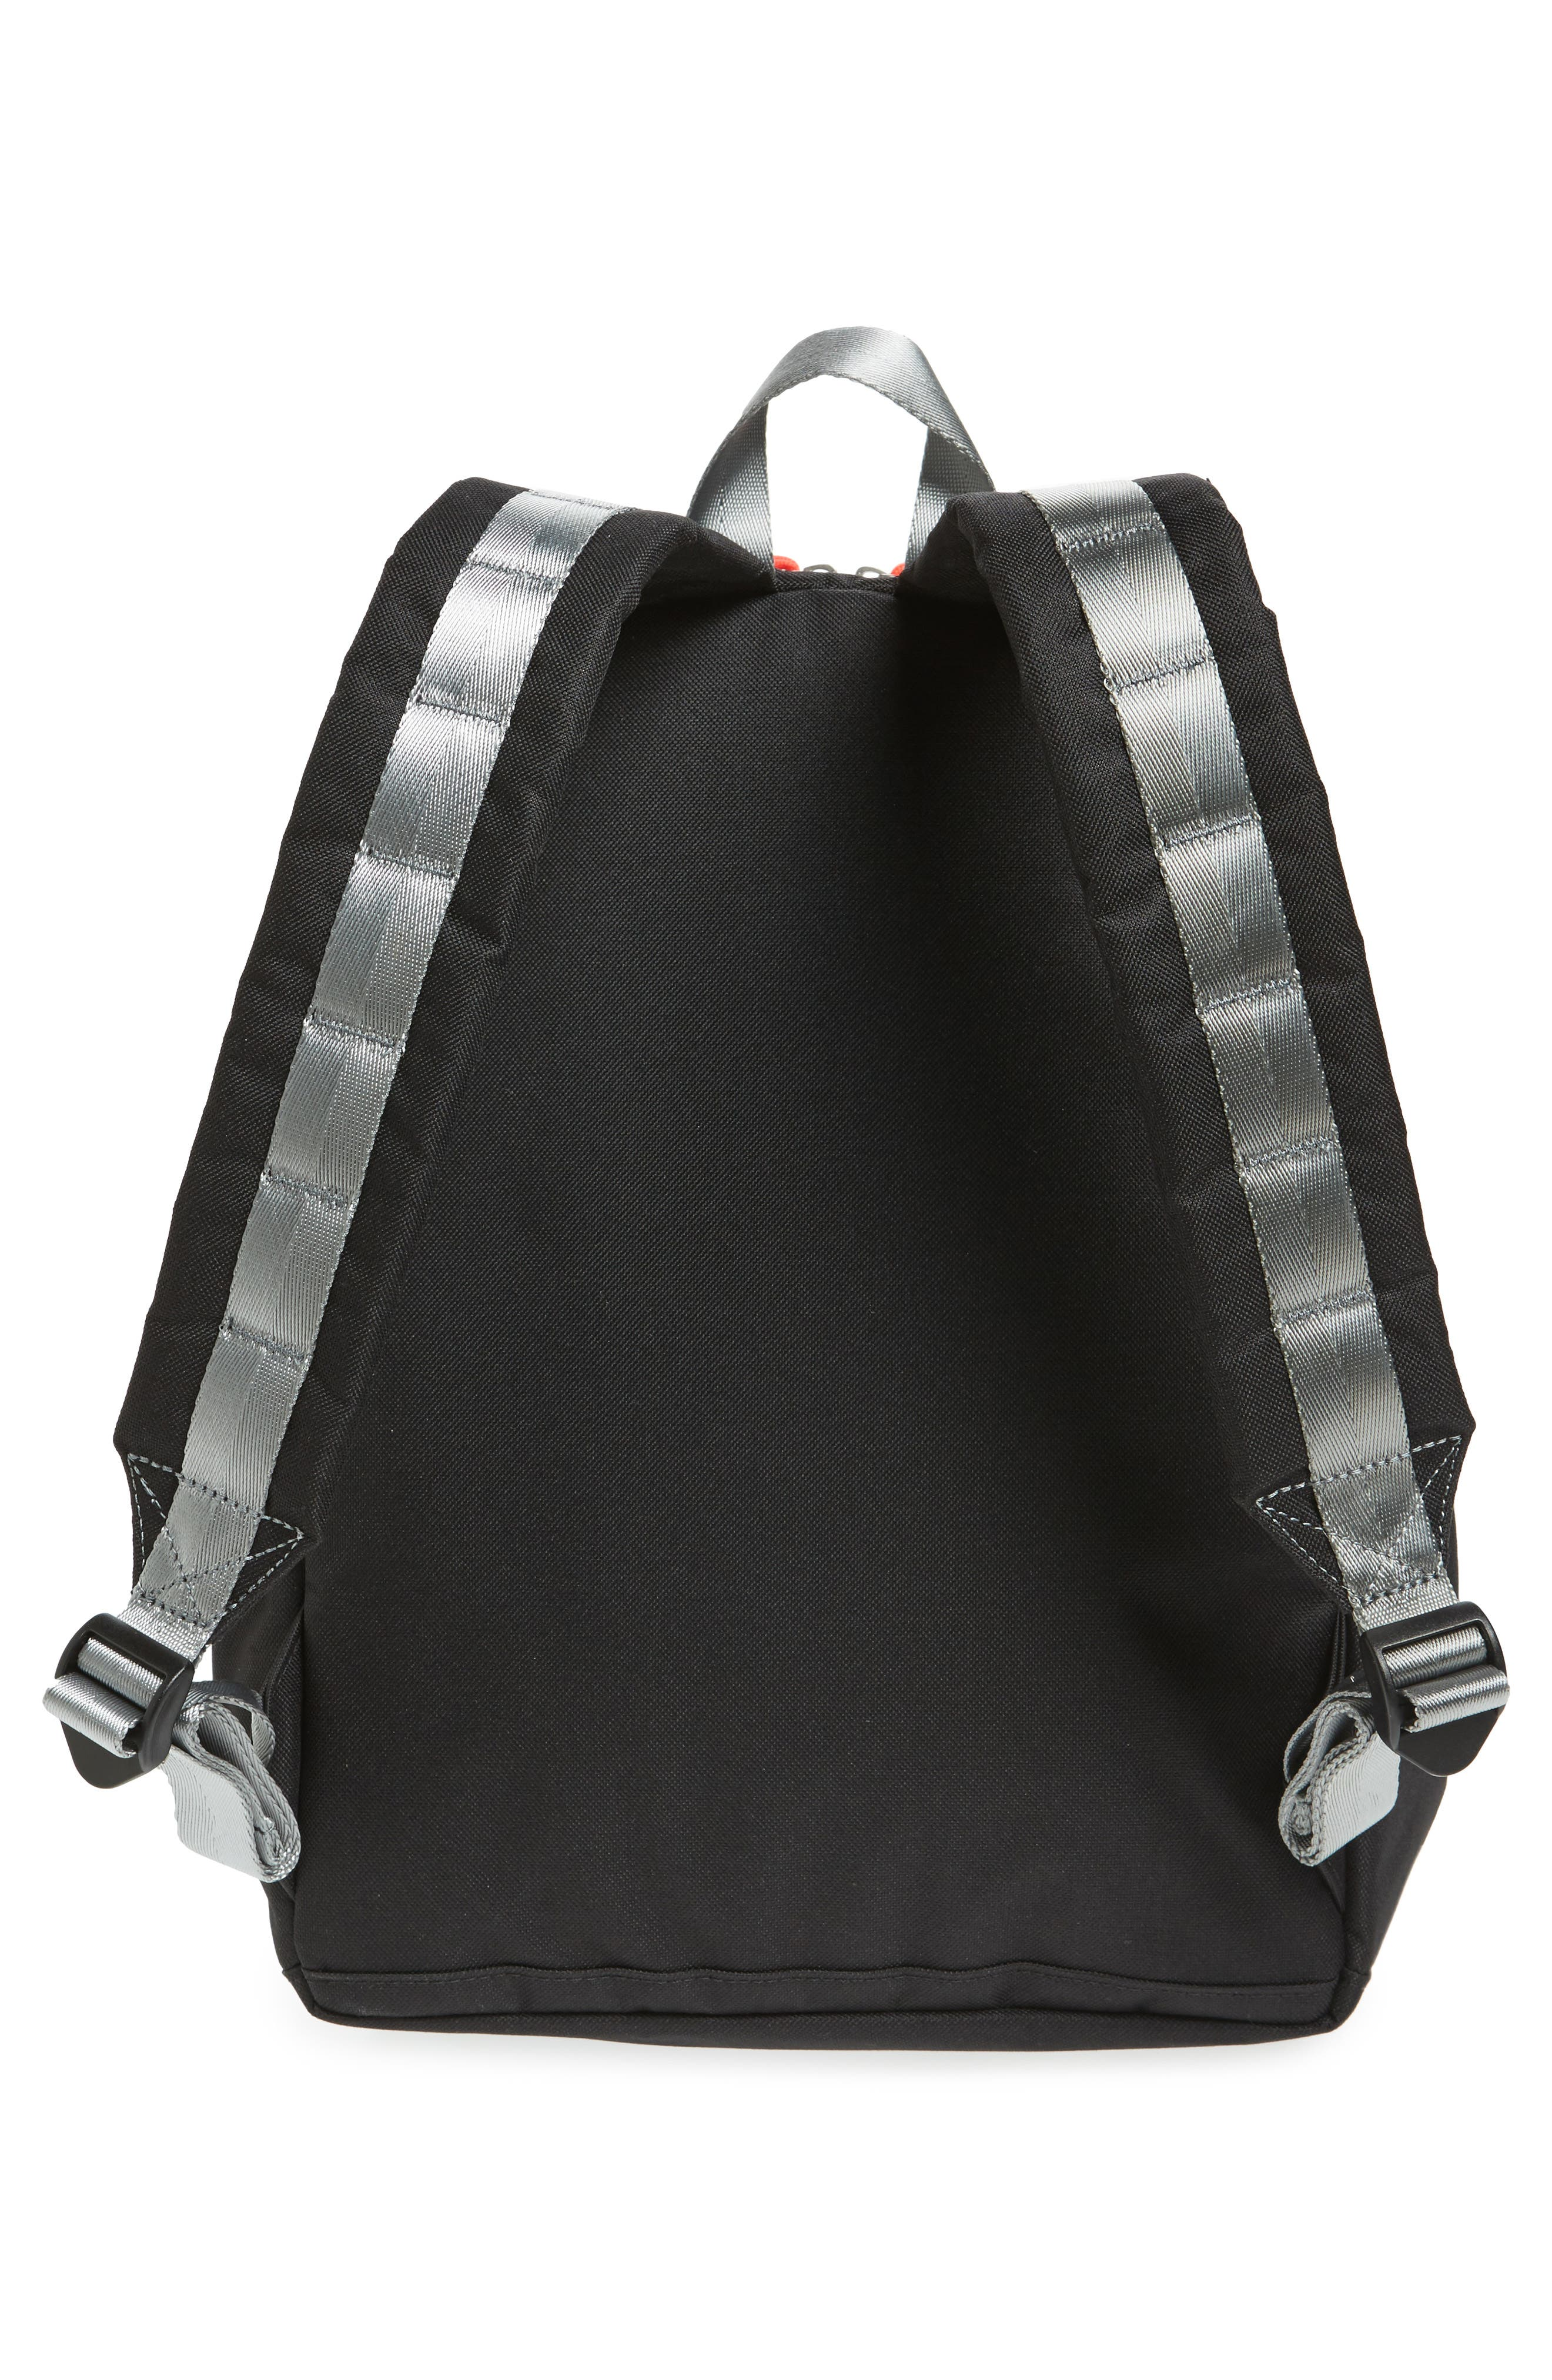 Star Wars<sup>™</sup> - Darth Vader Kane Backpack,                             Alternate thumbnail 3, color,                             001